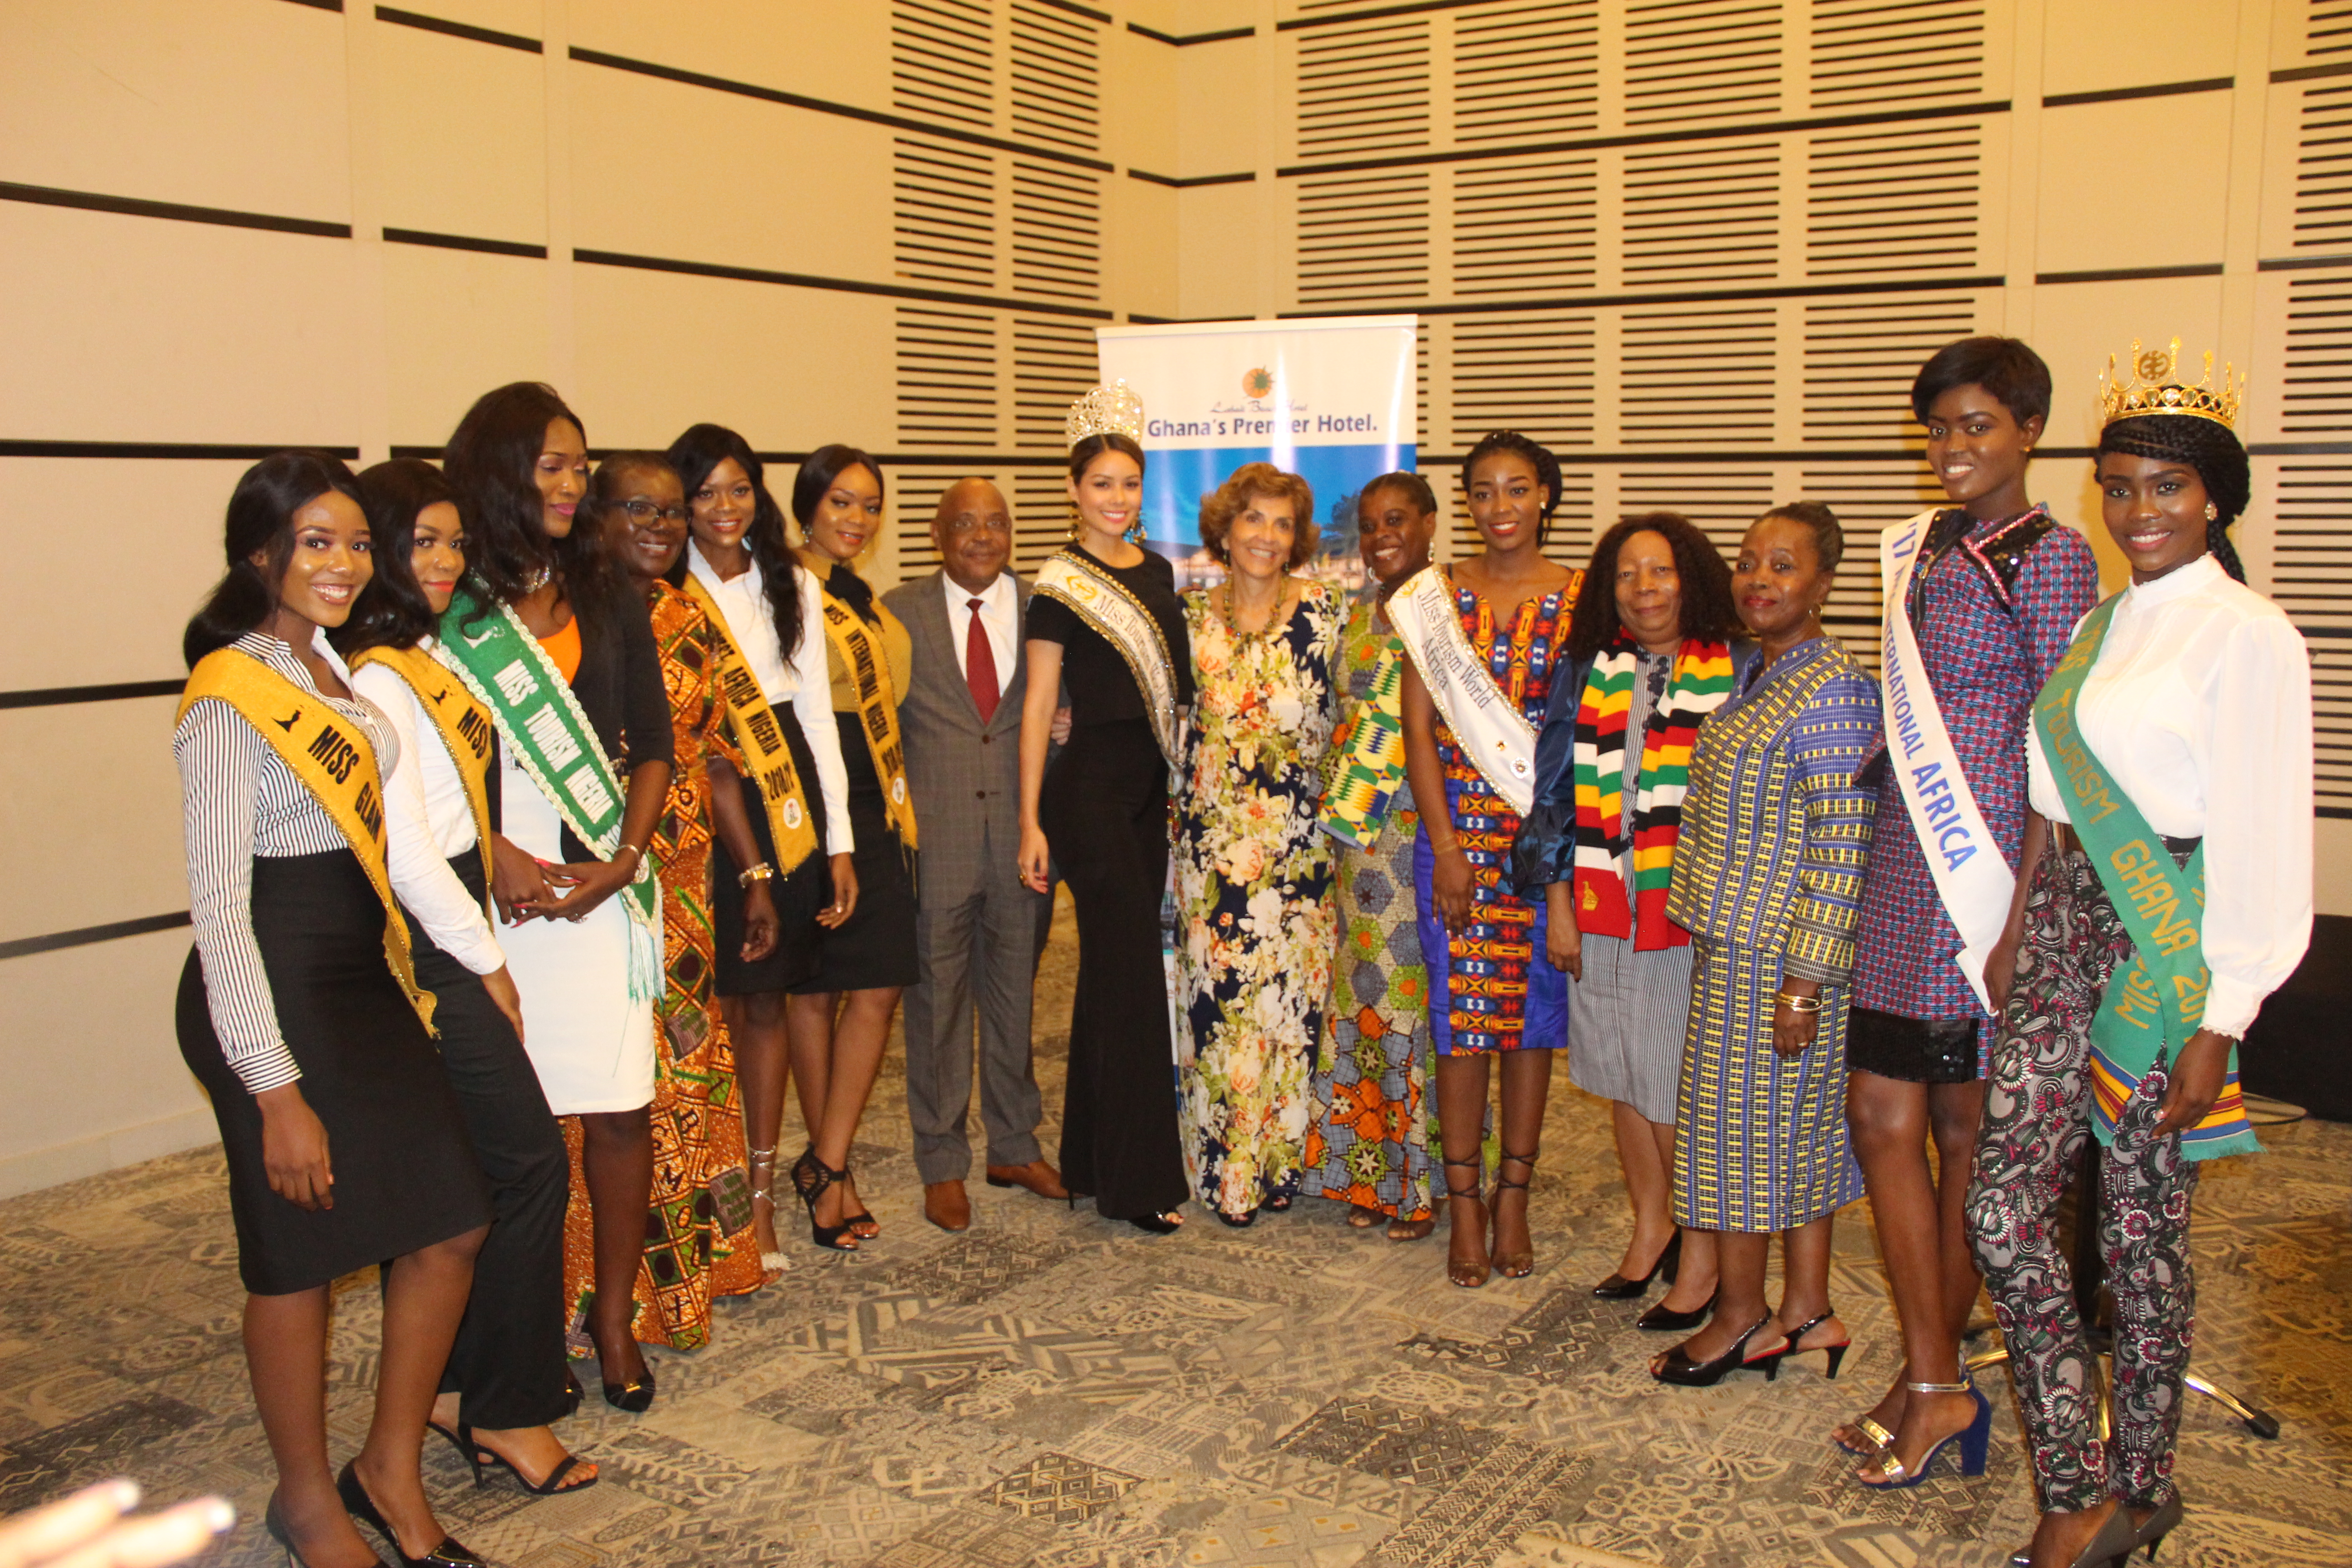 #Ghana: Agenda 2030 Takes Centre Stage at 2nd Youth in Tourism Conference